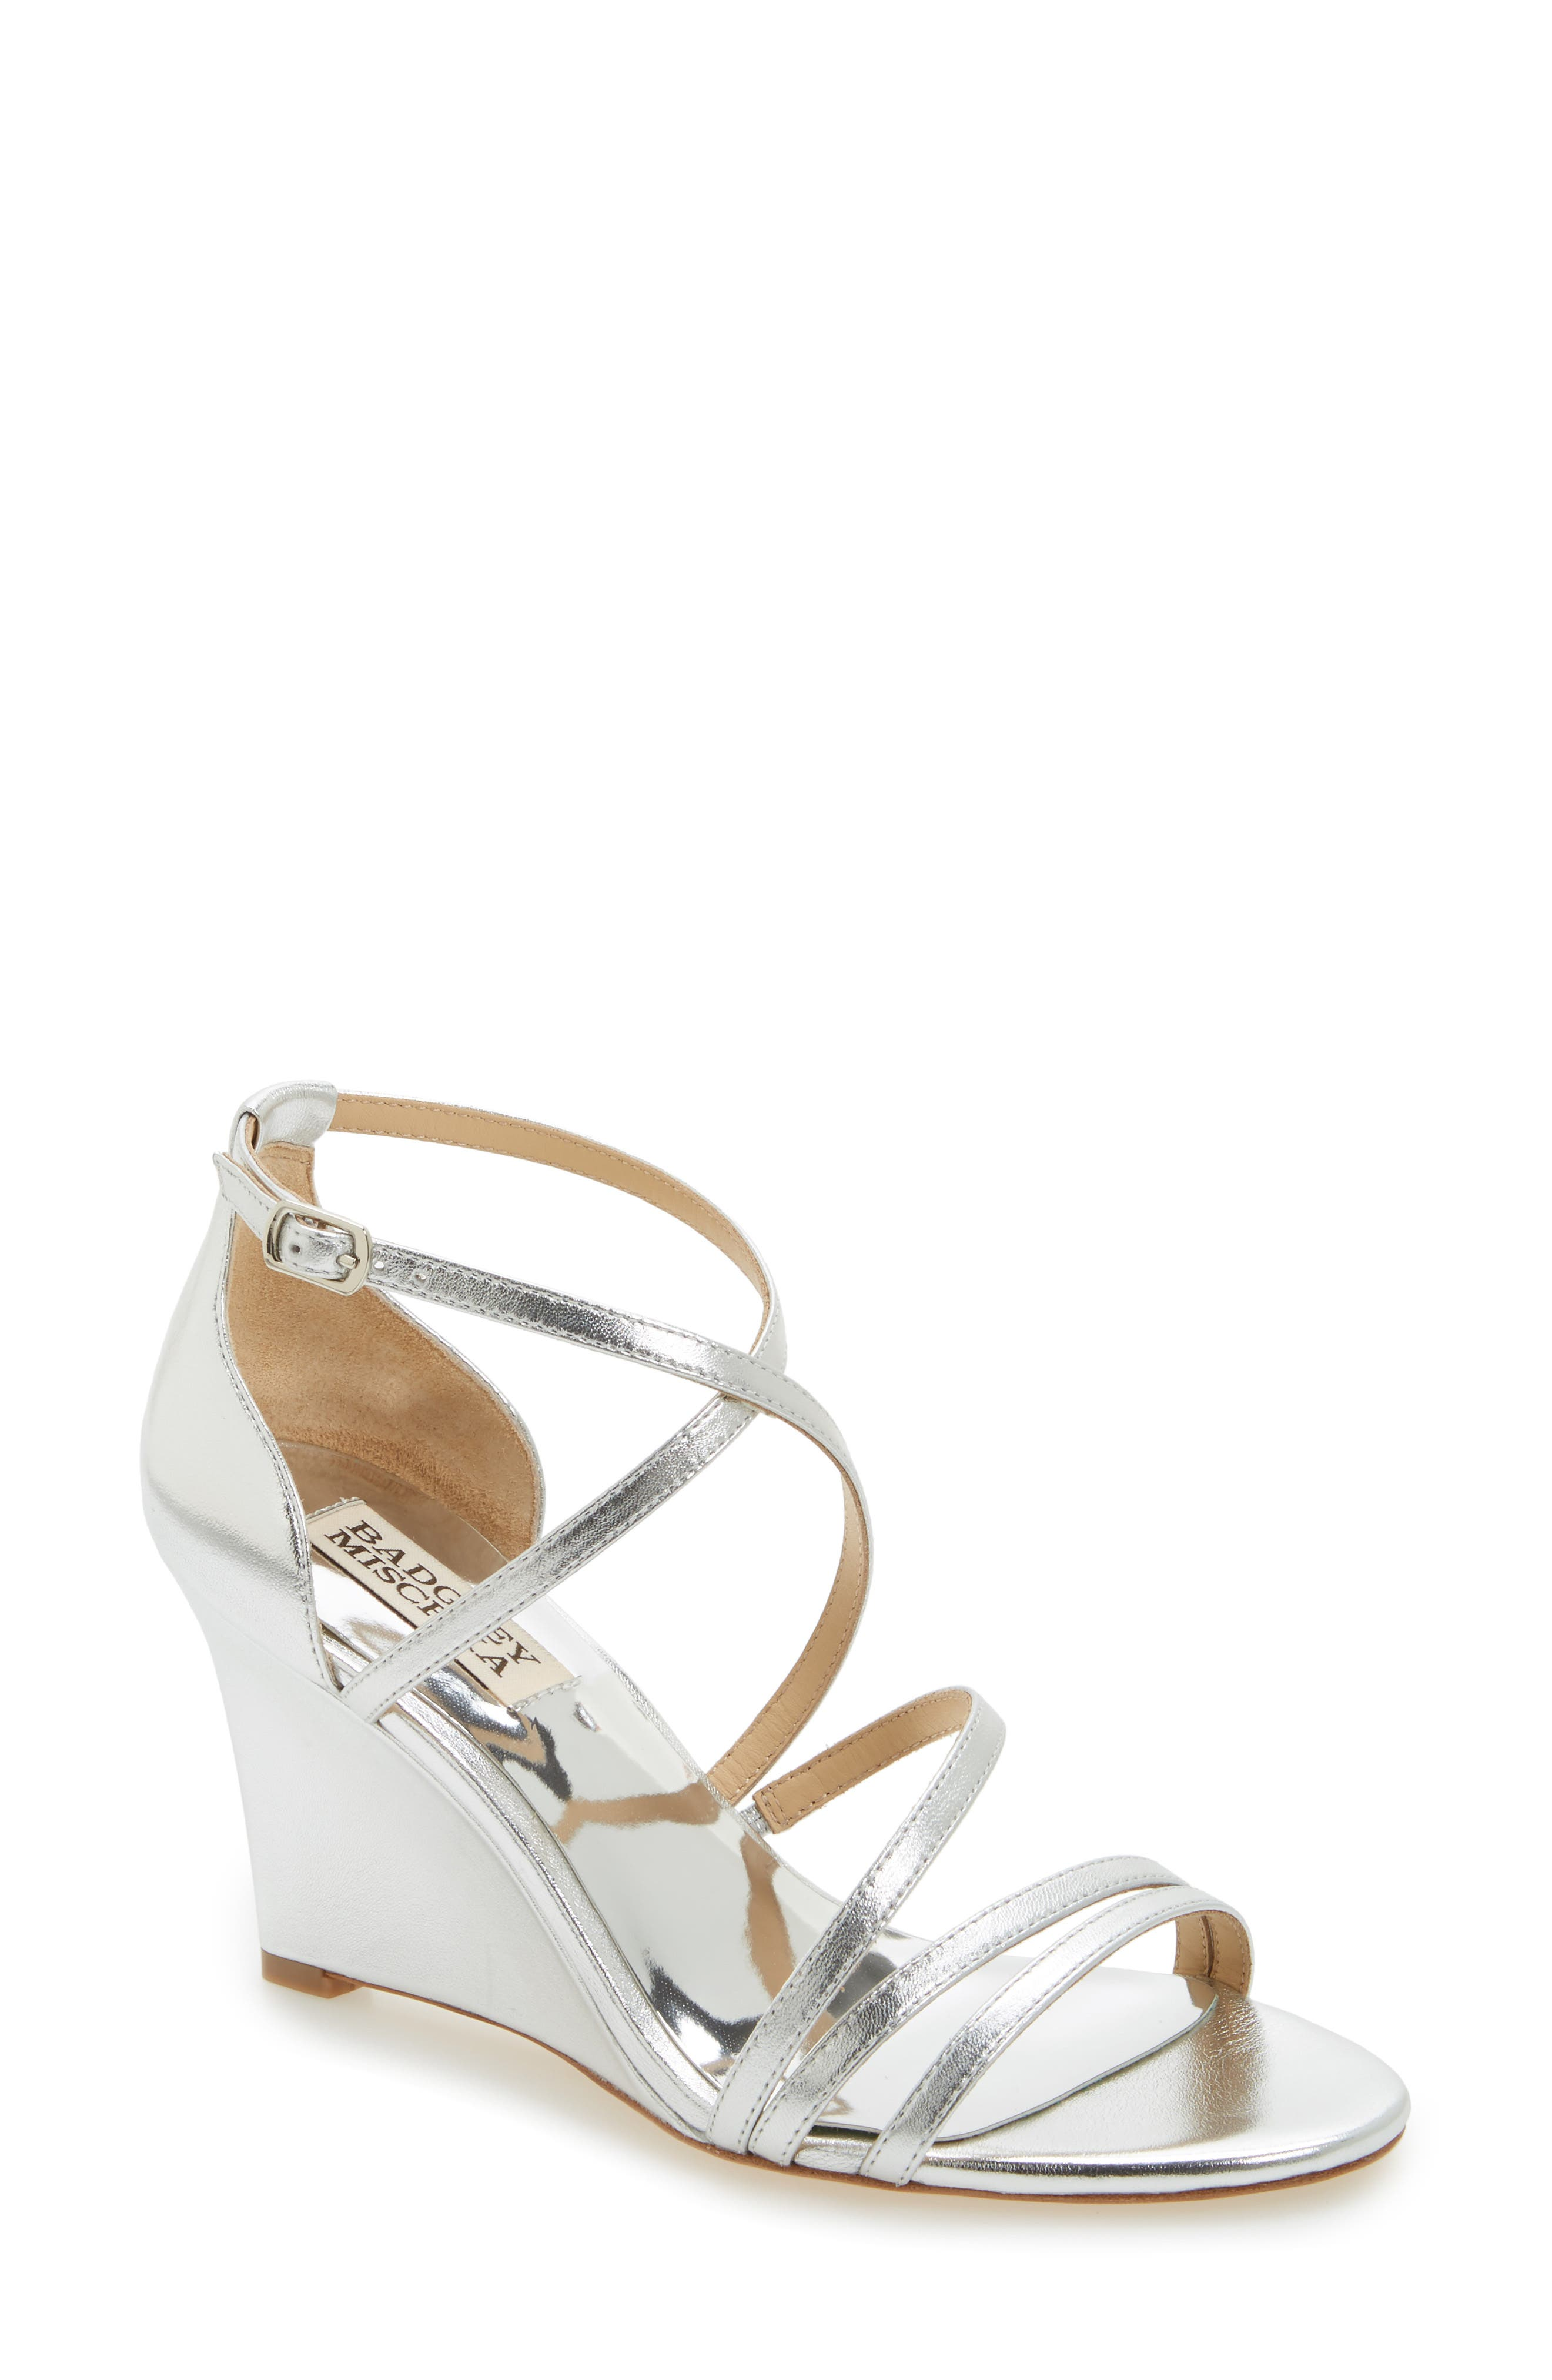 Bonanza Strappy Wedge Sandal,                             Main thumbnail 1, color,                             046